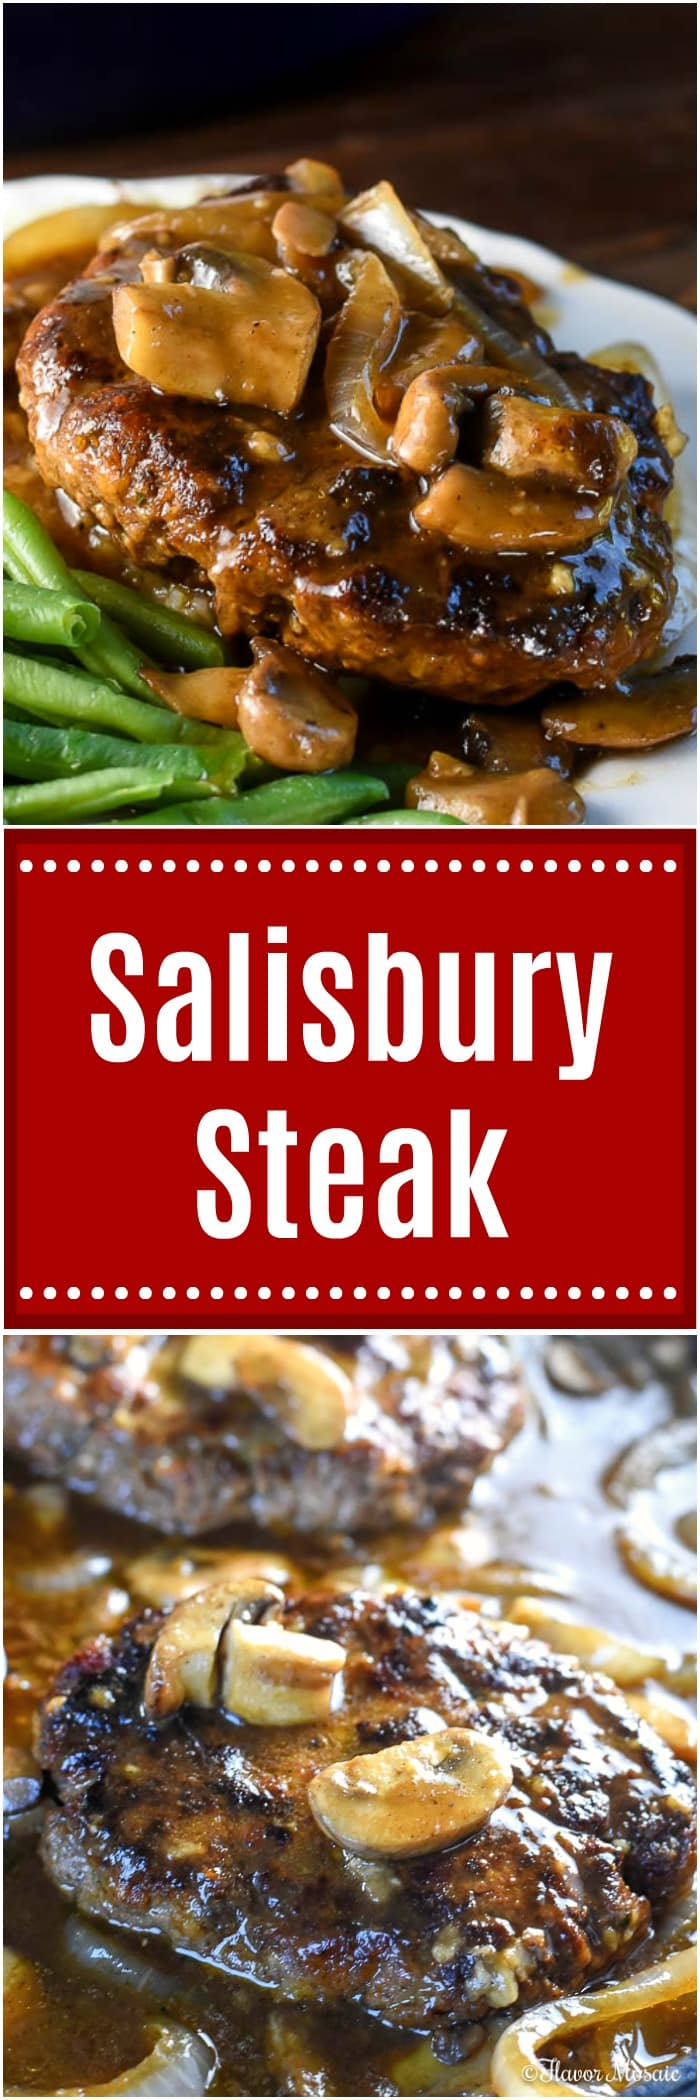 This homemade Salisbury Steak is a ground beef patty with onions, mushrooms, and a brown Salisbury Steak gravy, and is pure comfort food.